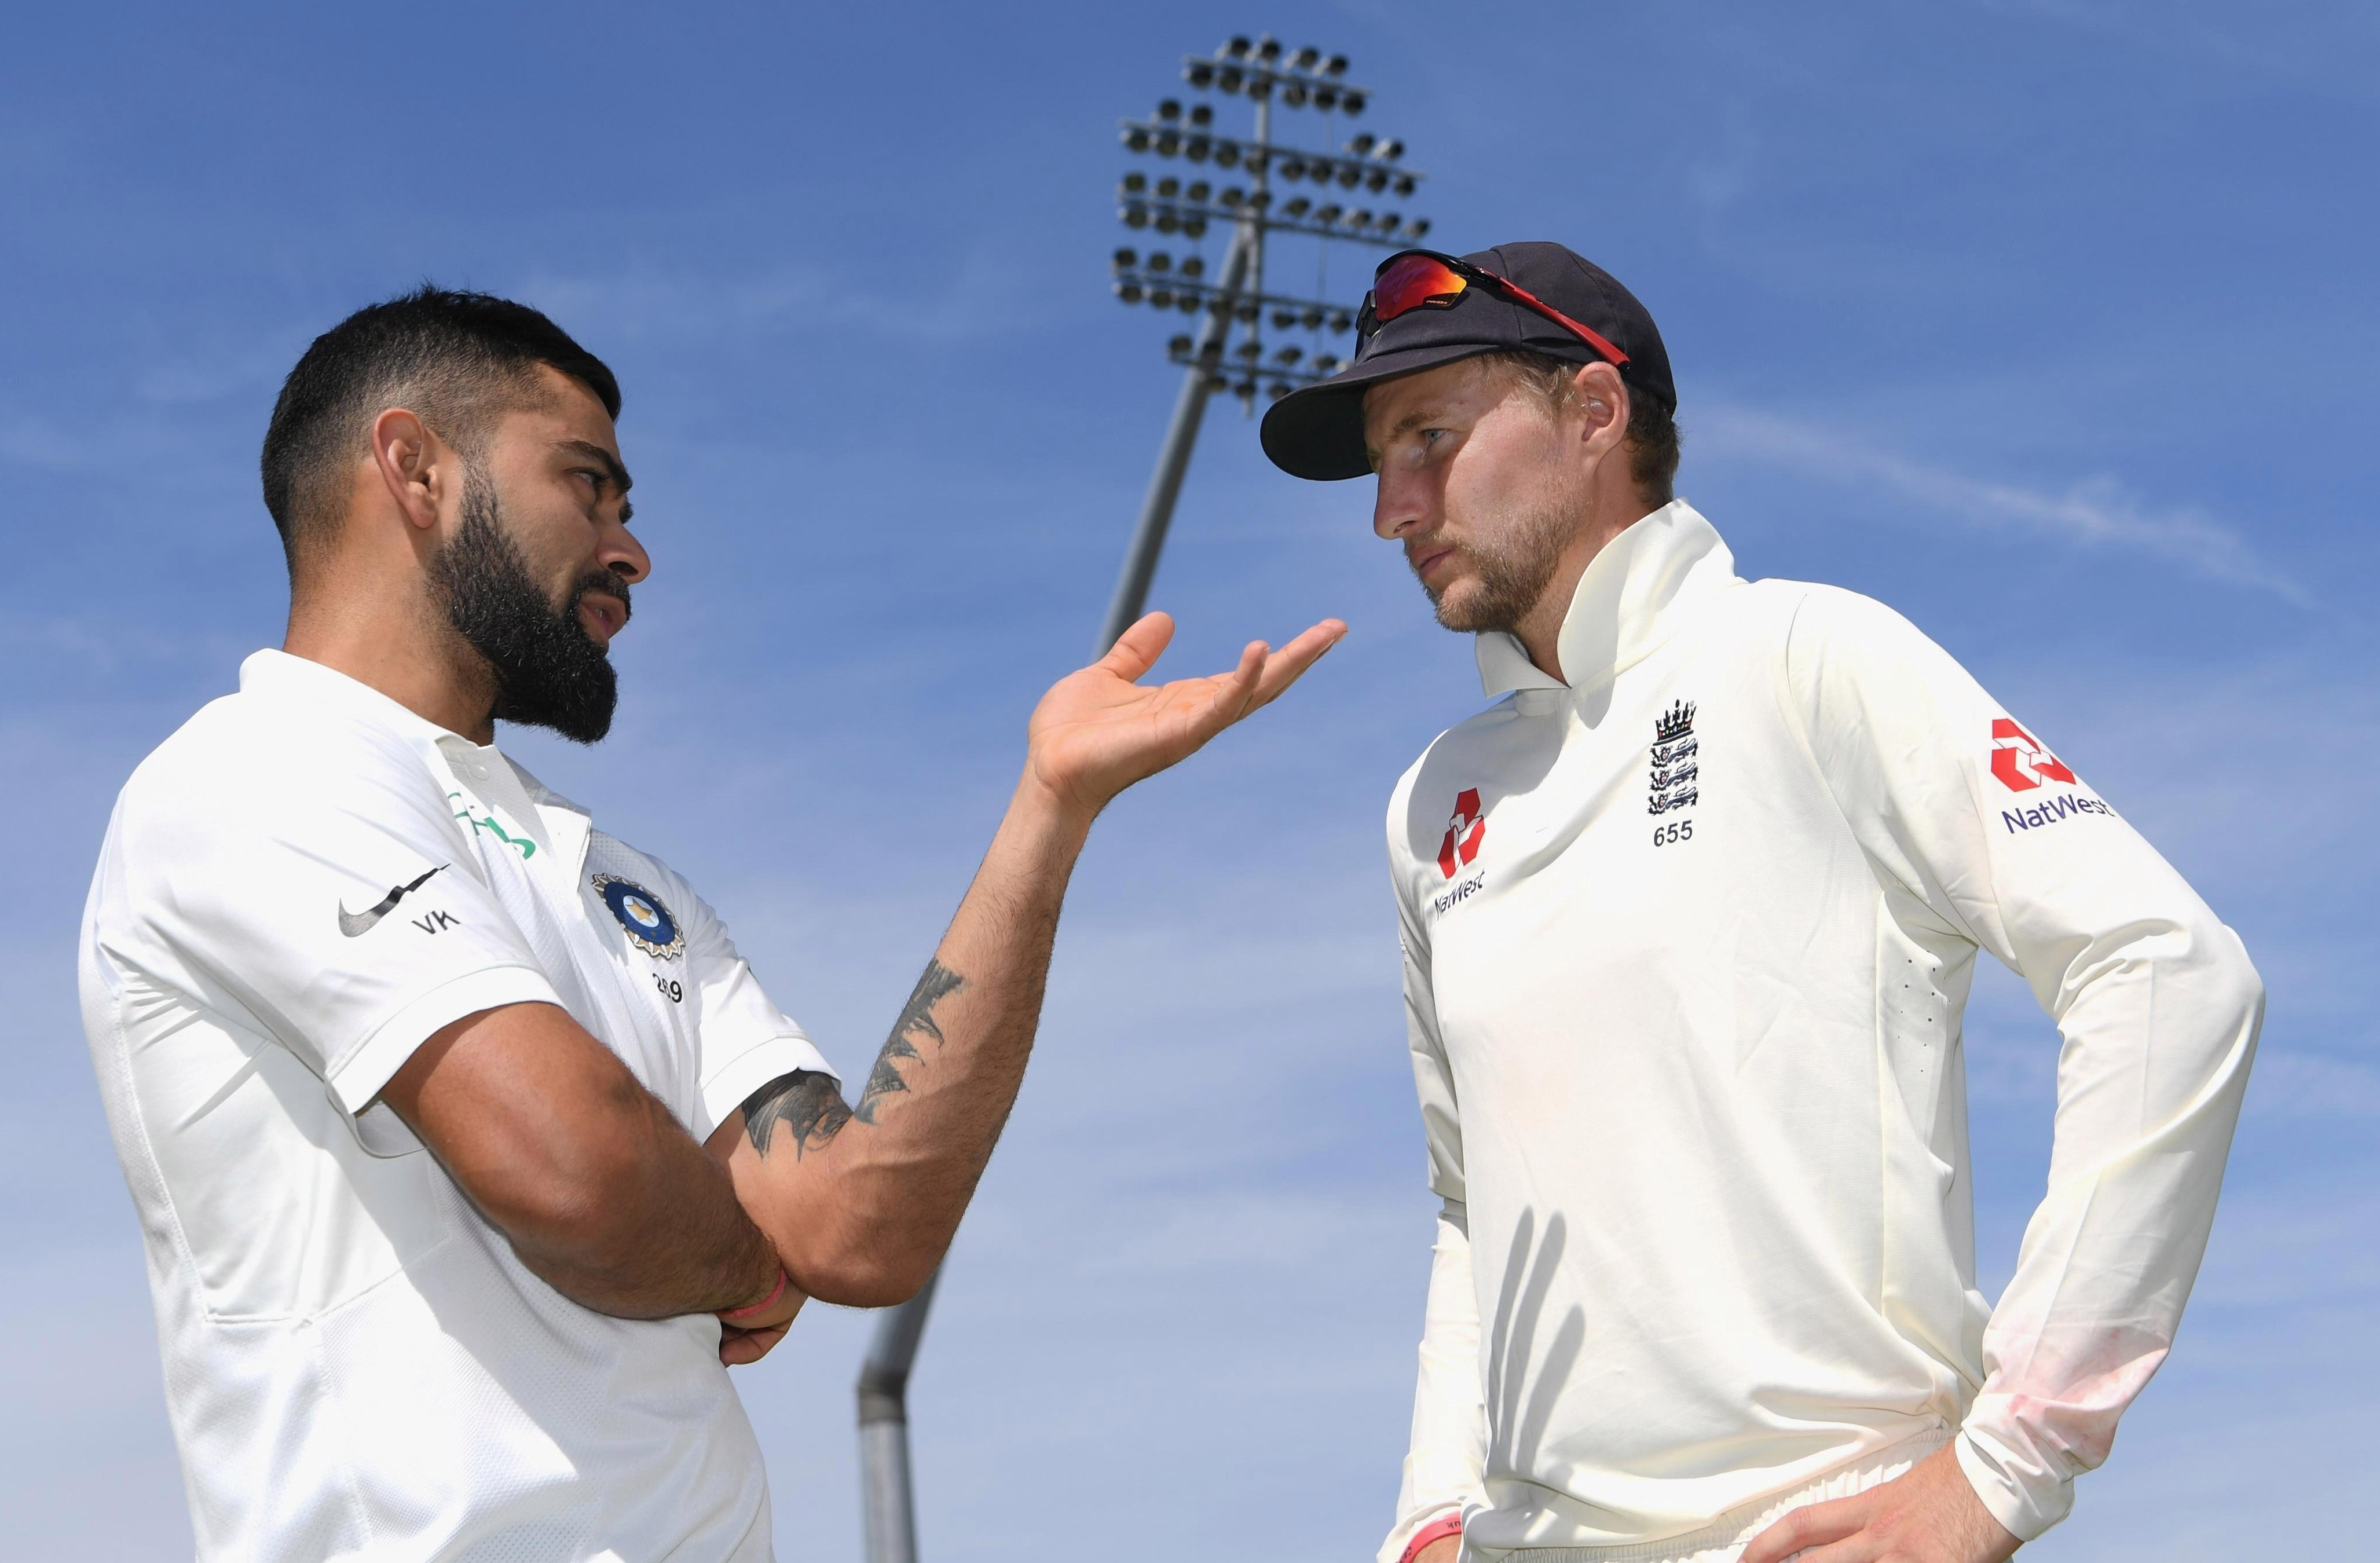 England skipper Joe Root talks over the Edgbaston opener - which lasted four days - with his India counterpart Virat Kohli